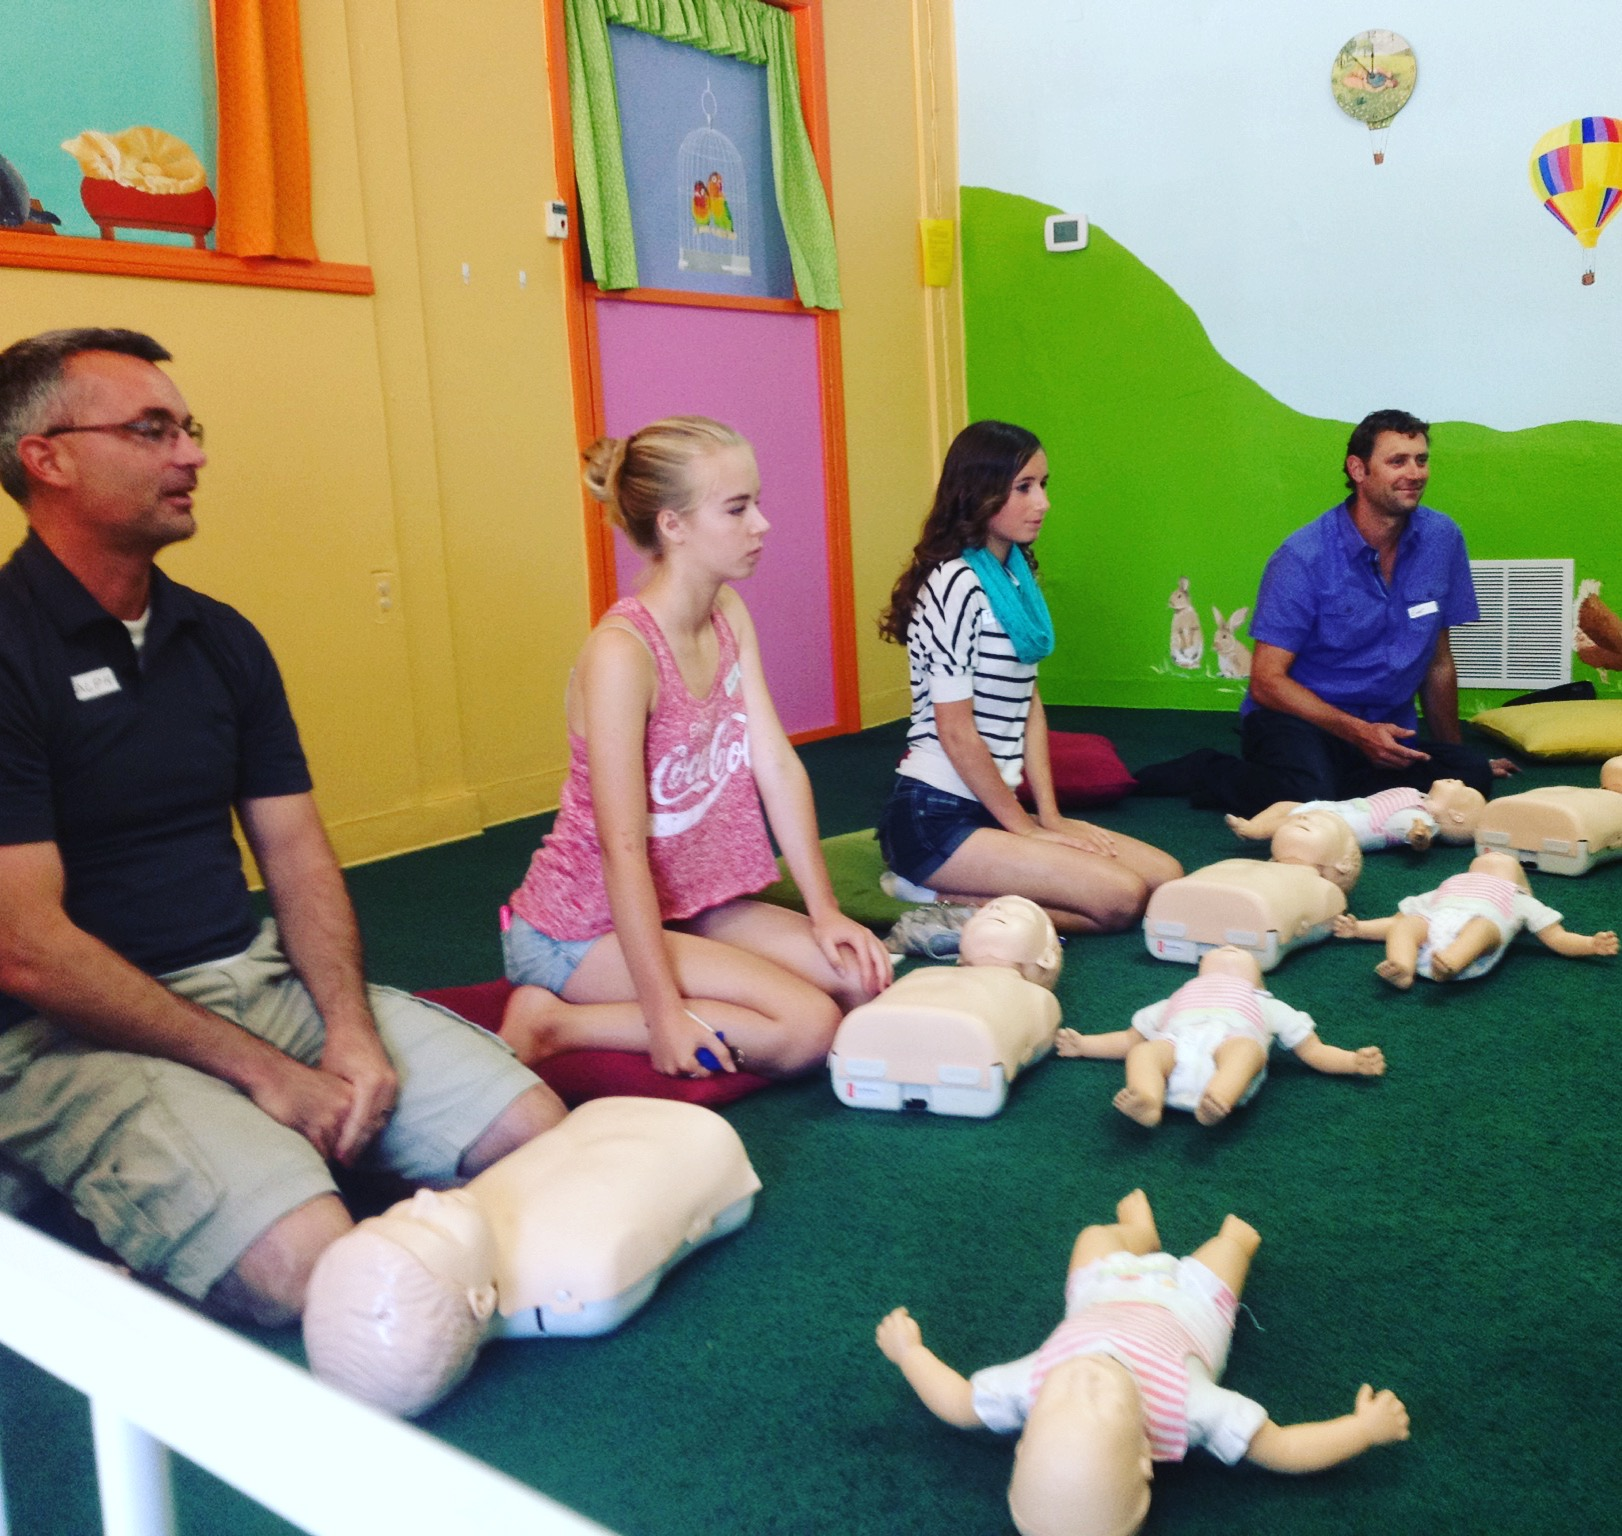 Parents and Teen Baby Sitters at Baby Garten Studio in San Diego Learn Lifesaving Skills at Infant and Child CPR and Choking Relief Class